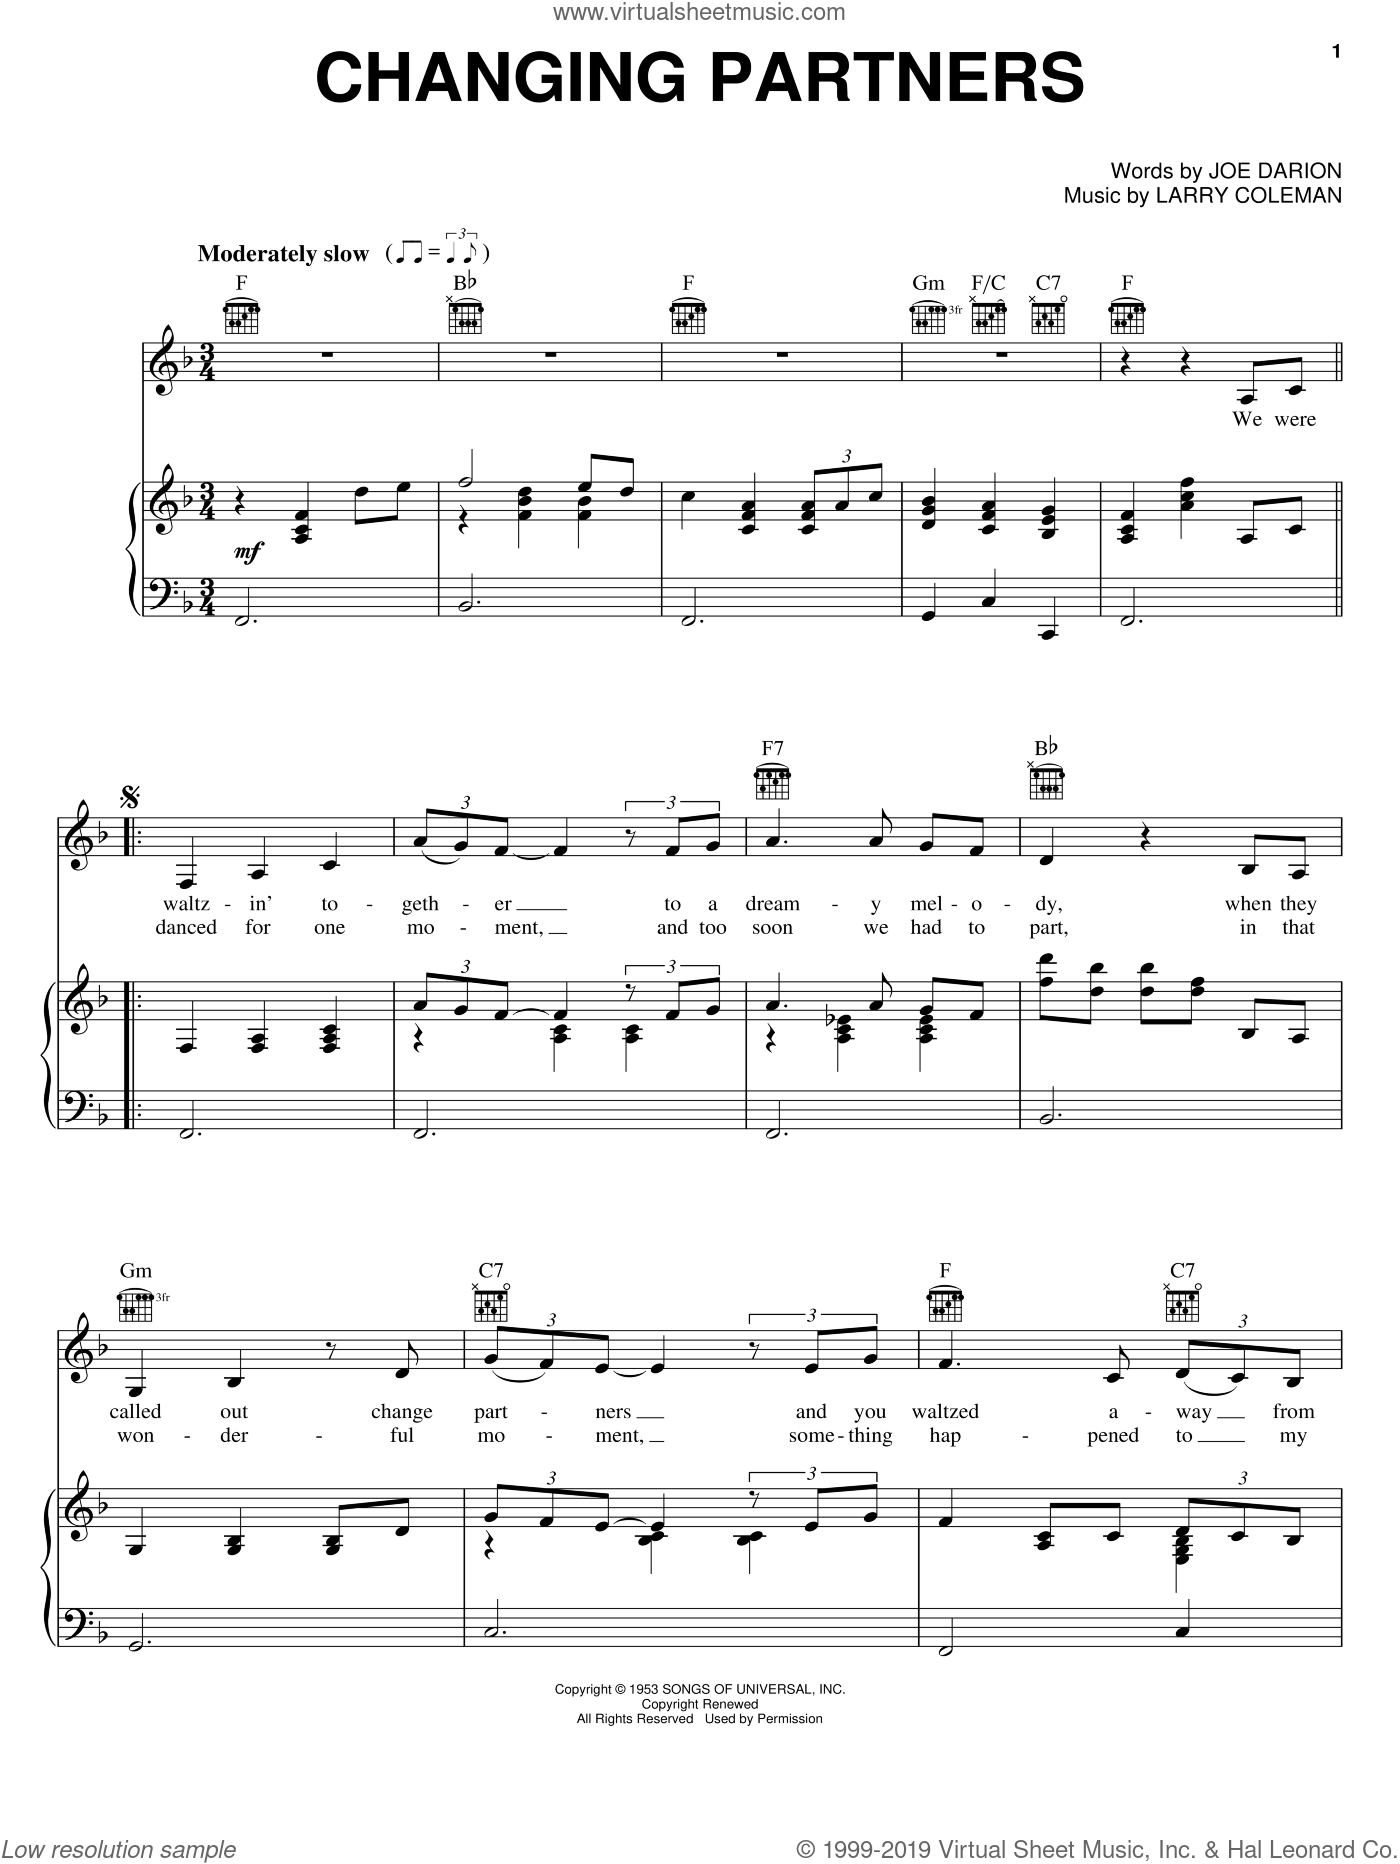 Changing Partners sheet music for voice, piano or guitar by Larry Coleman